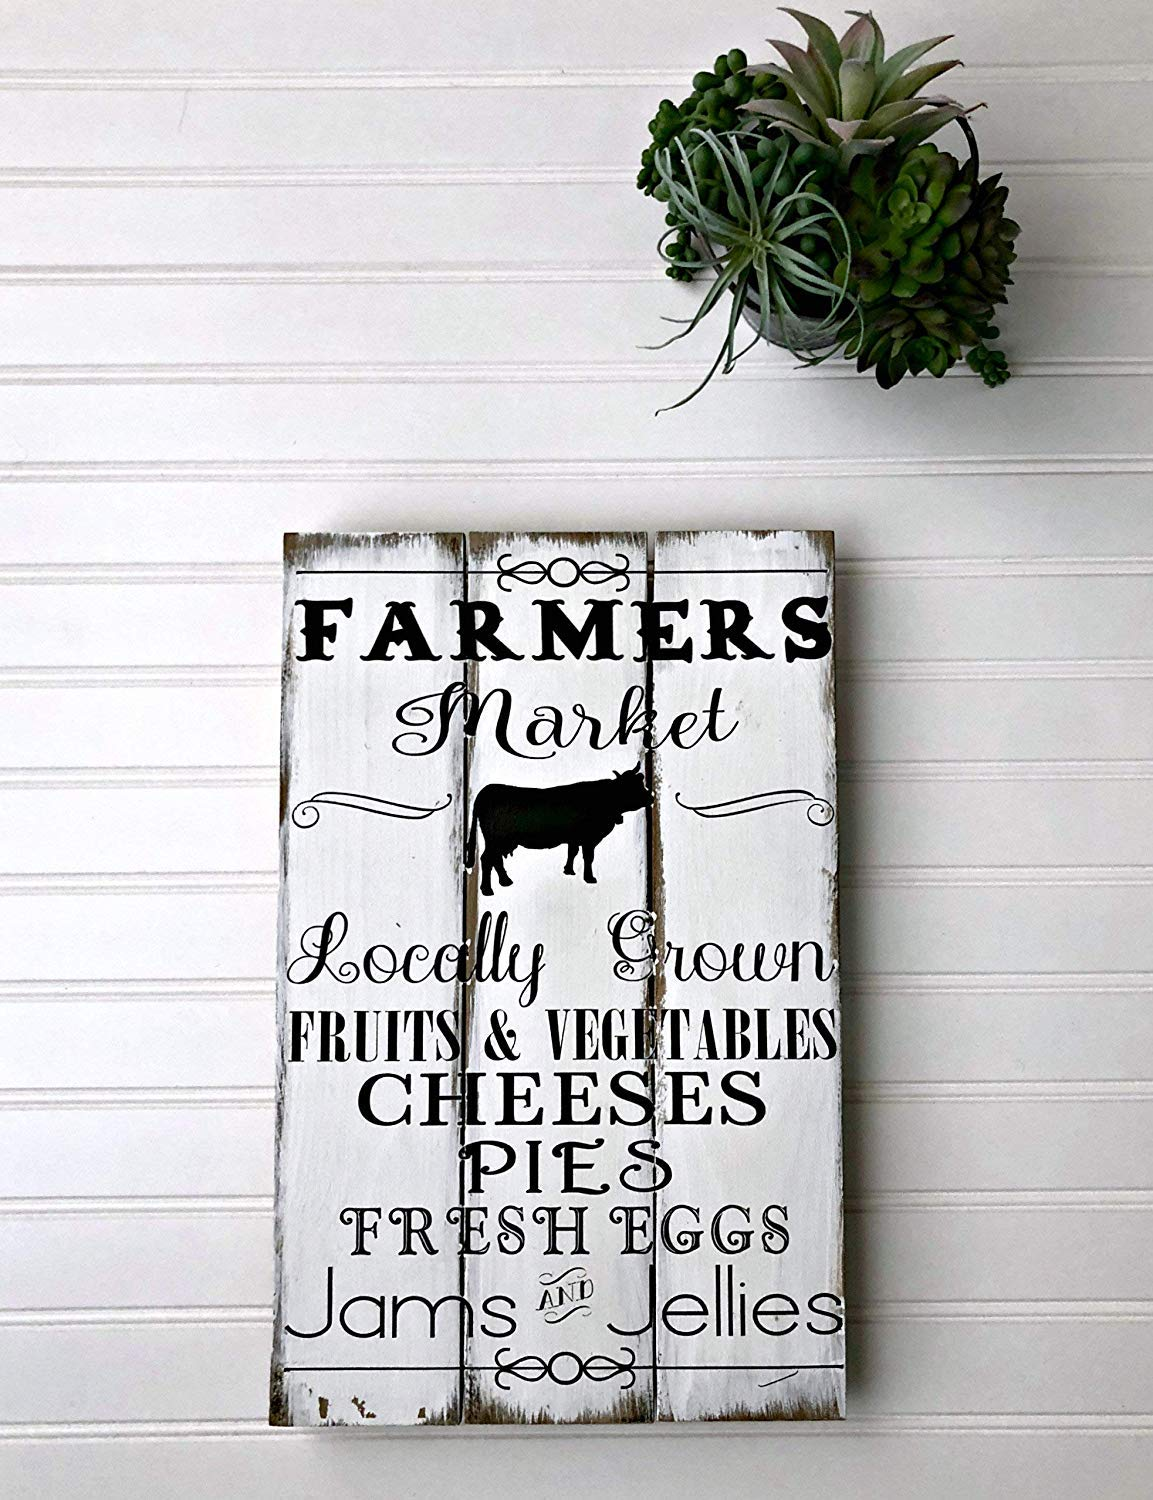 Amazon.com: 30×45cm Farmers – Cartel de Mercado rústico con ...